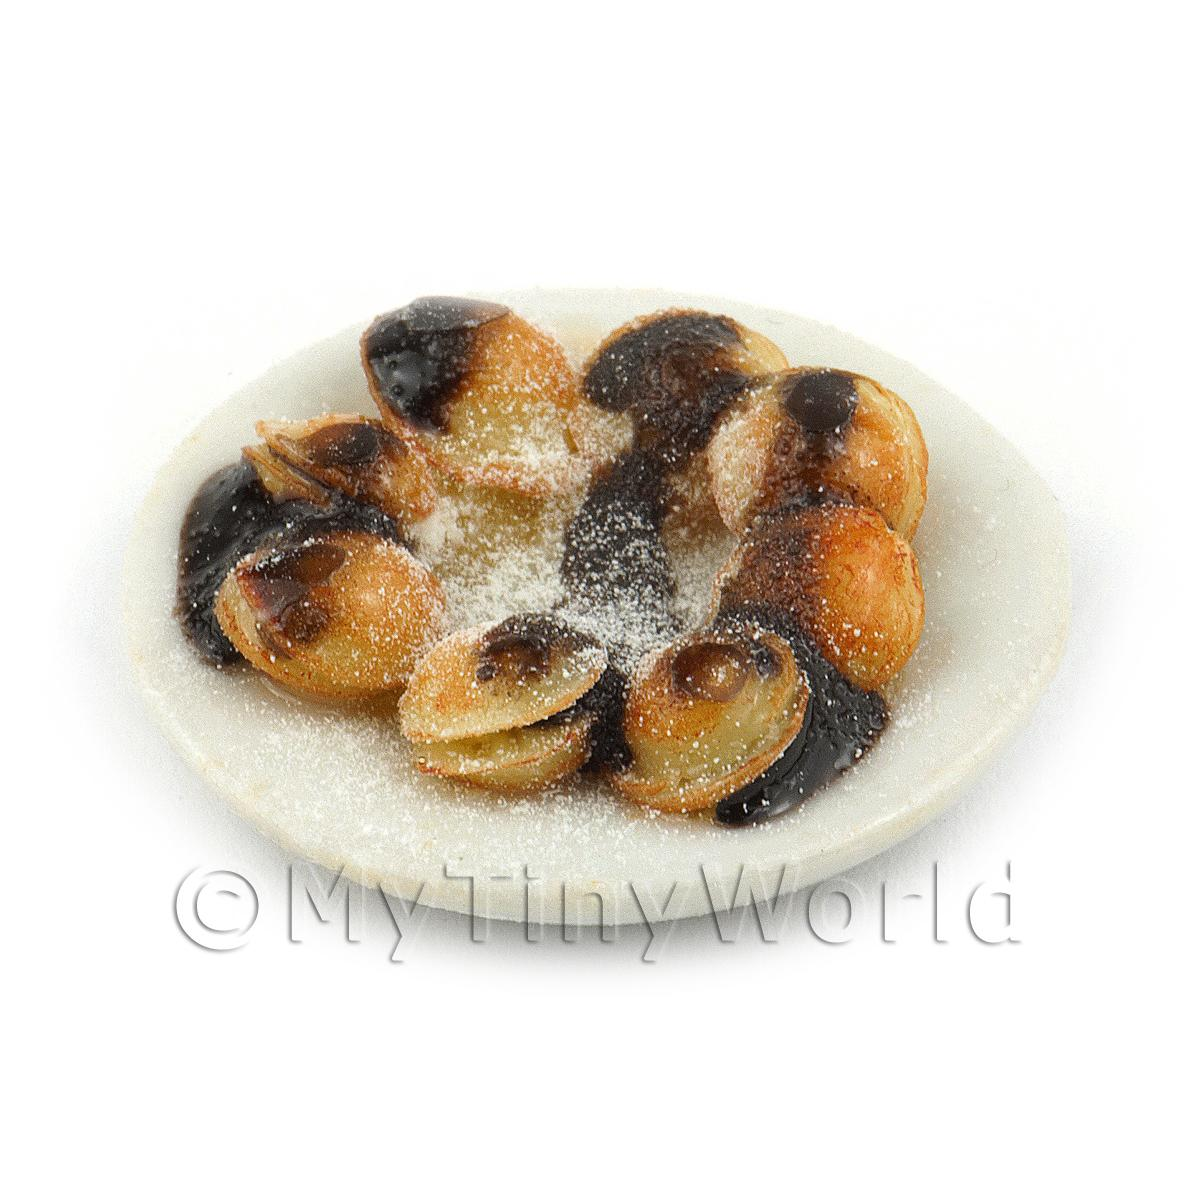 Dolls House Miniature Belgian Pancakes with Chocolate Syrup